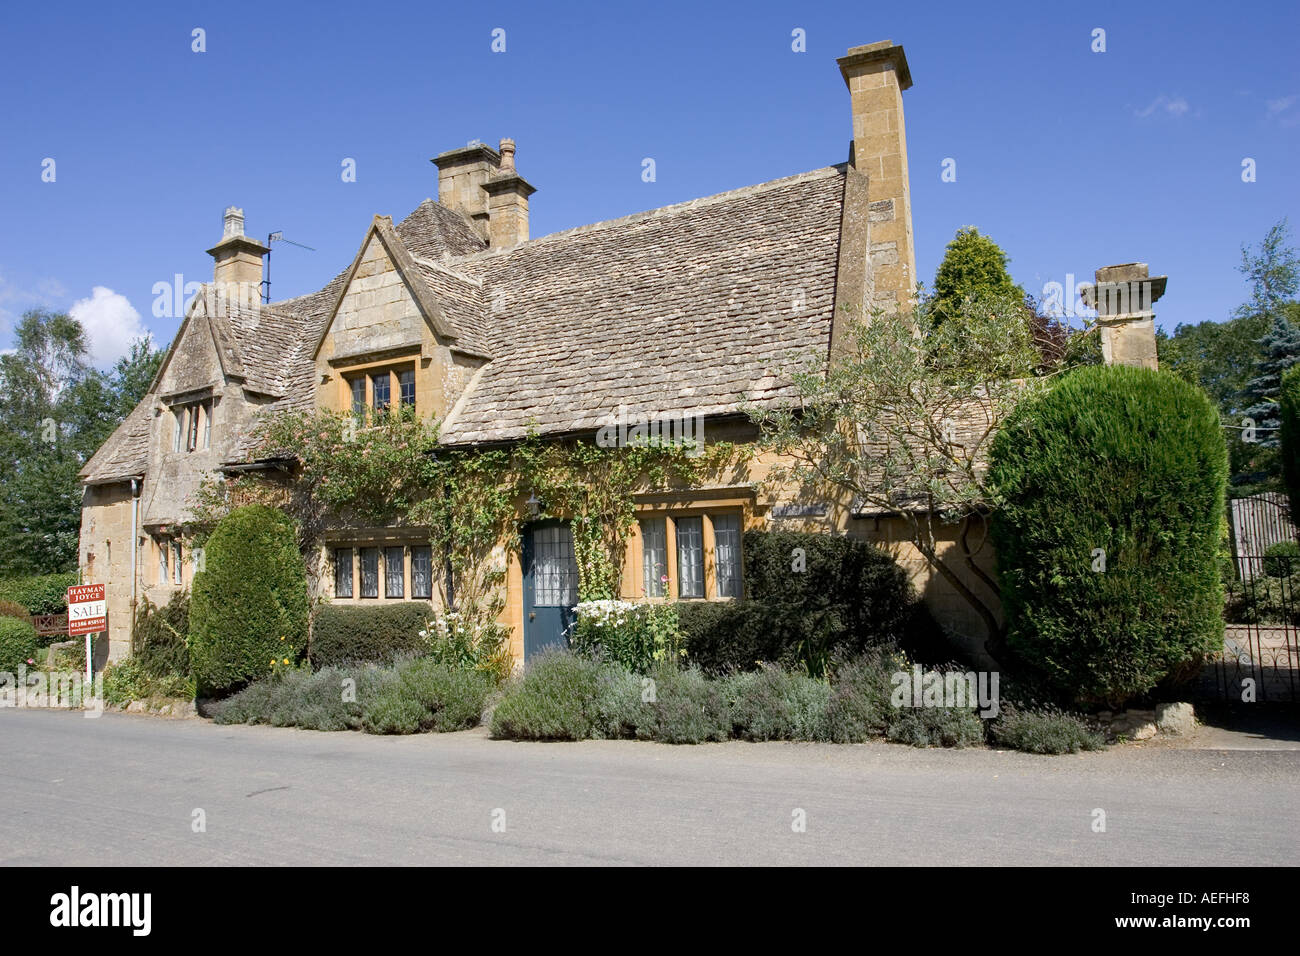 cotswold property gloucestershire news dreamy lifestyle the sale cottages tunley uk in cotswolds cottage cirencester for sapperton old scotland properties corner